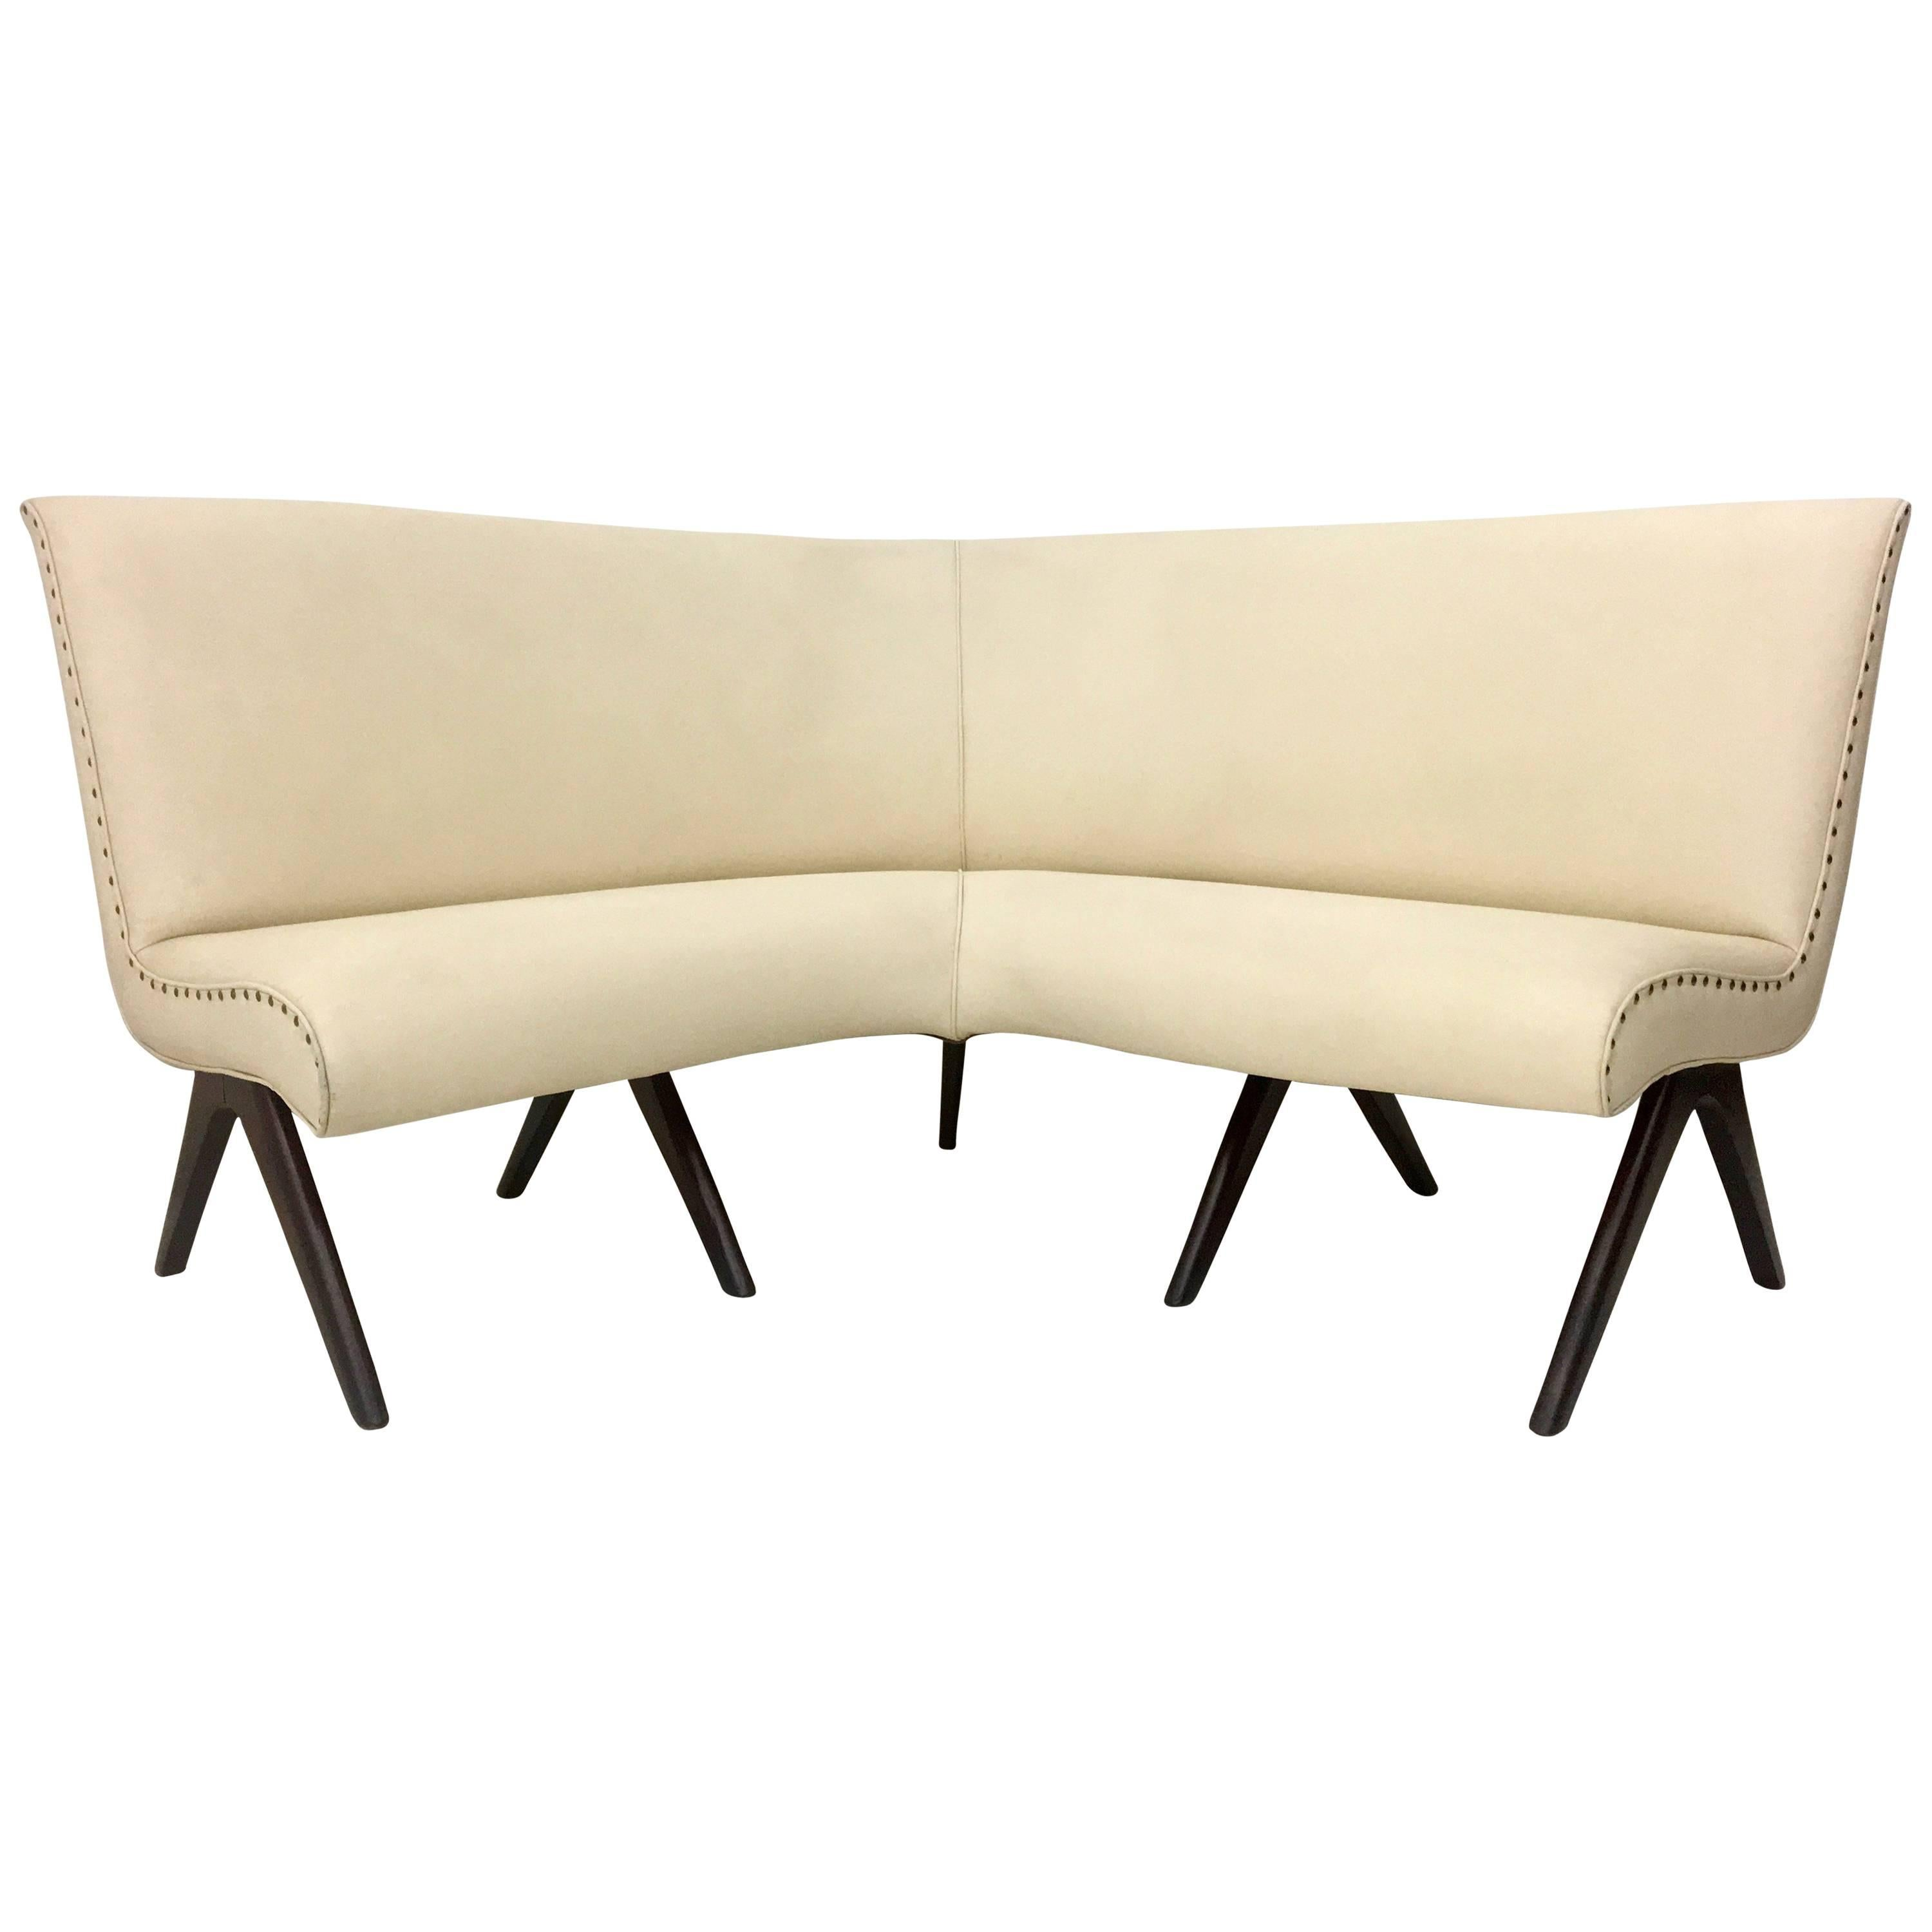 Ivory Skai And Wood Corner Sofa, Italy, 1950s For Sale